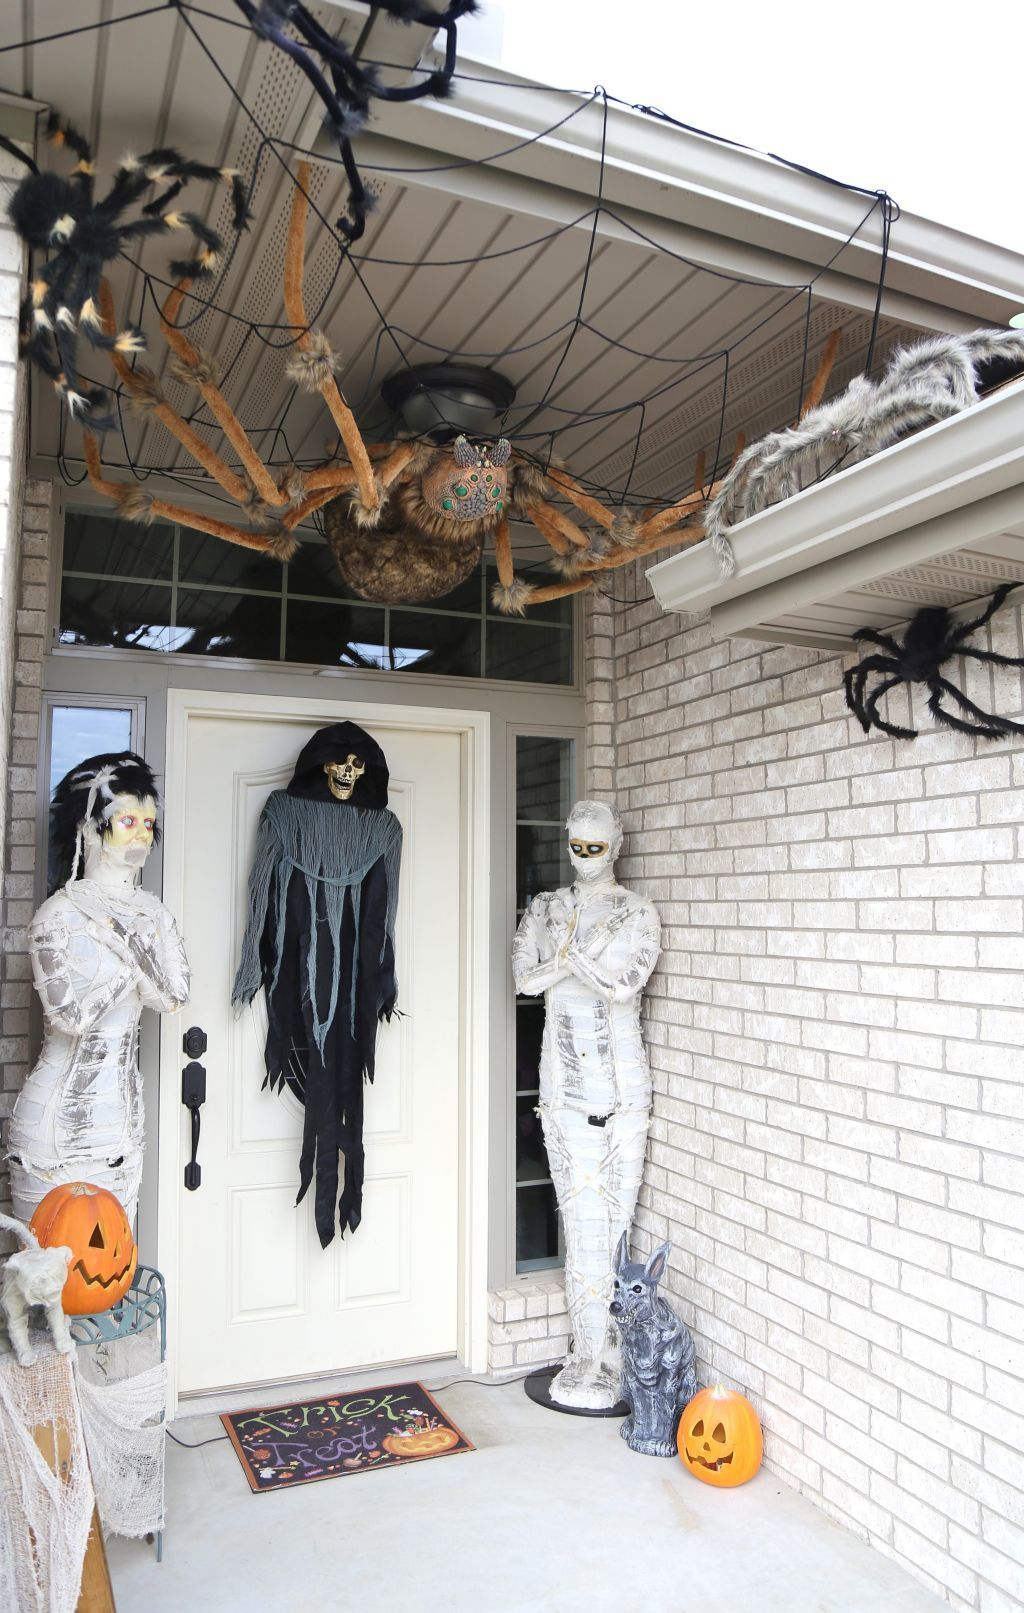 My Haunted Porch 2016 Spider was bought at Spirit